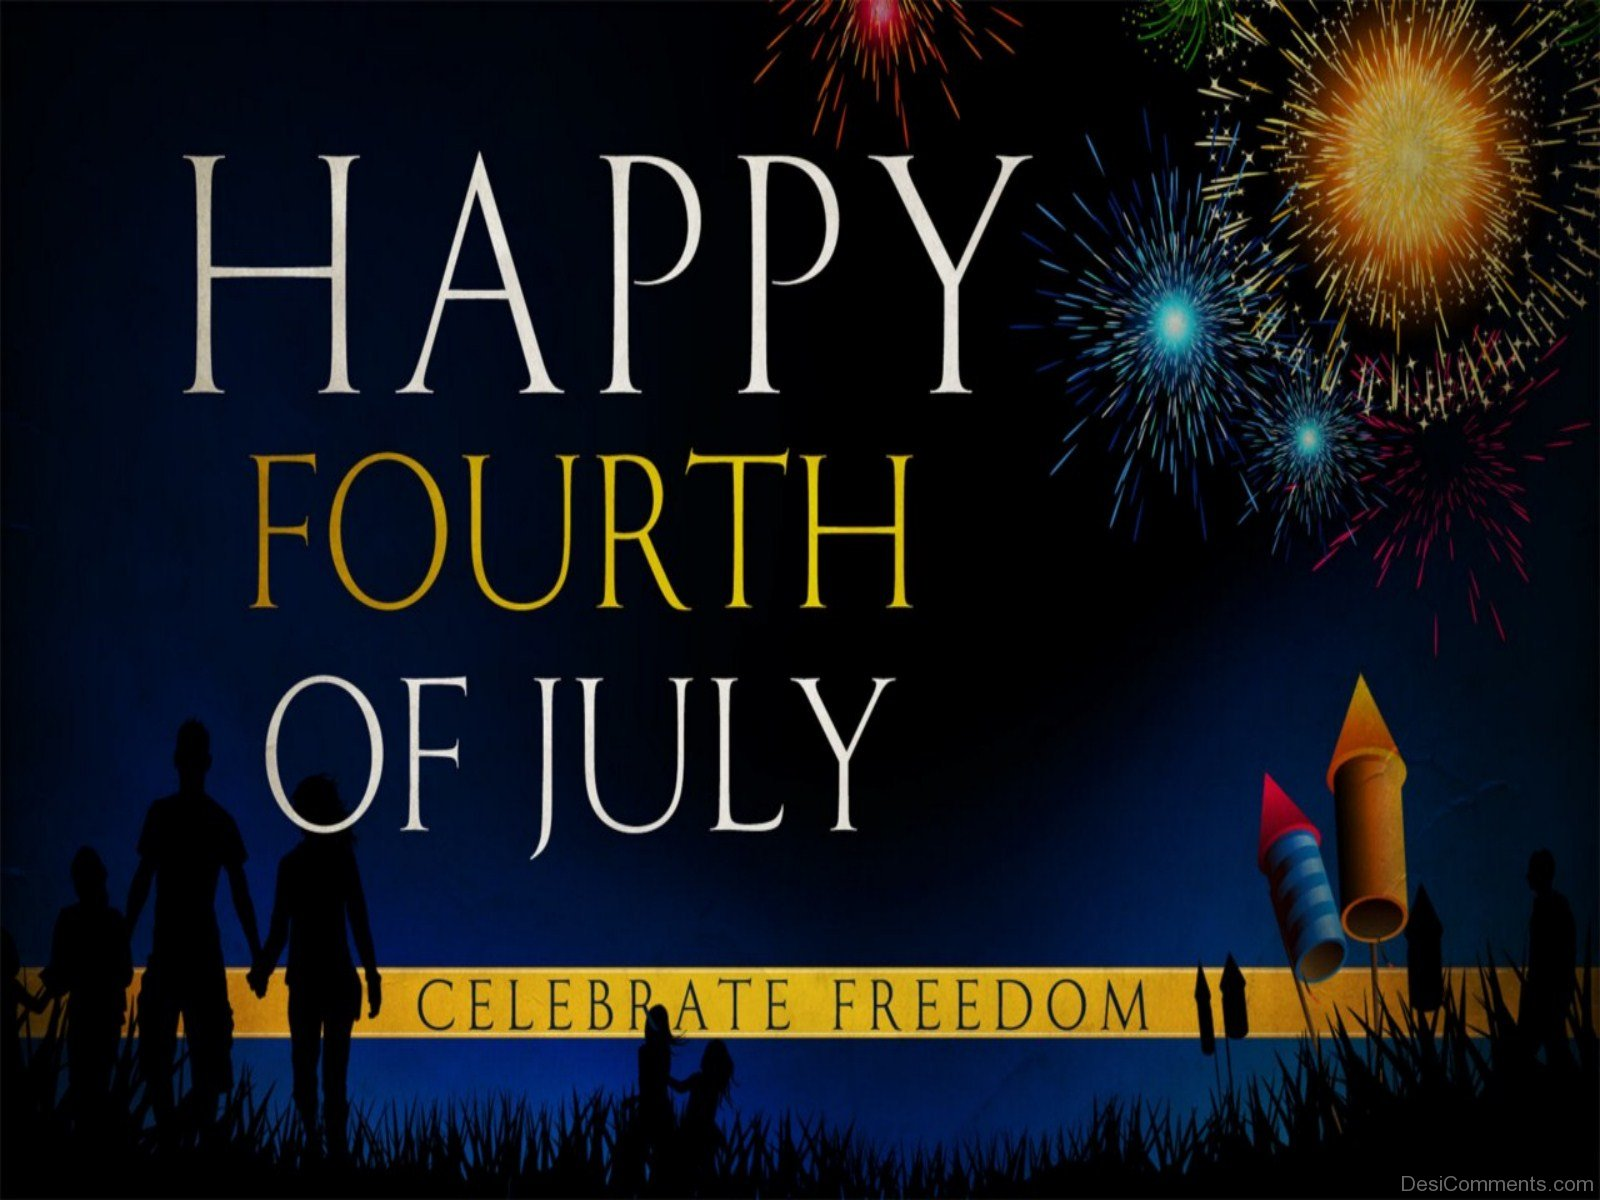 Happy fourth of july celebrate freedom for Why is 4th of july celebrated